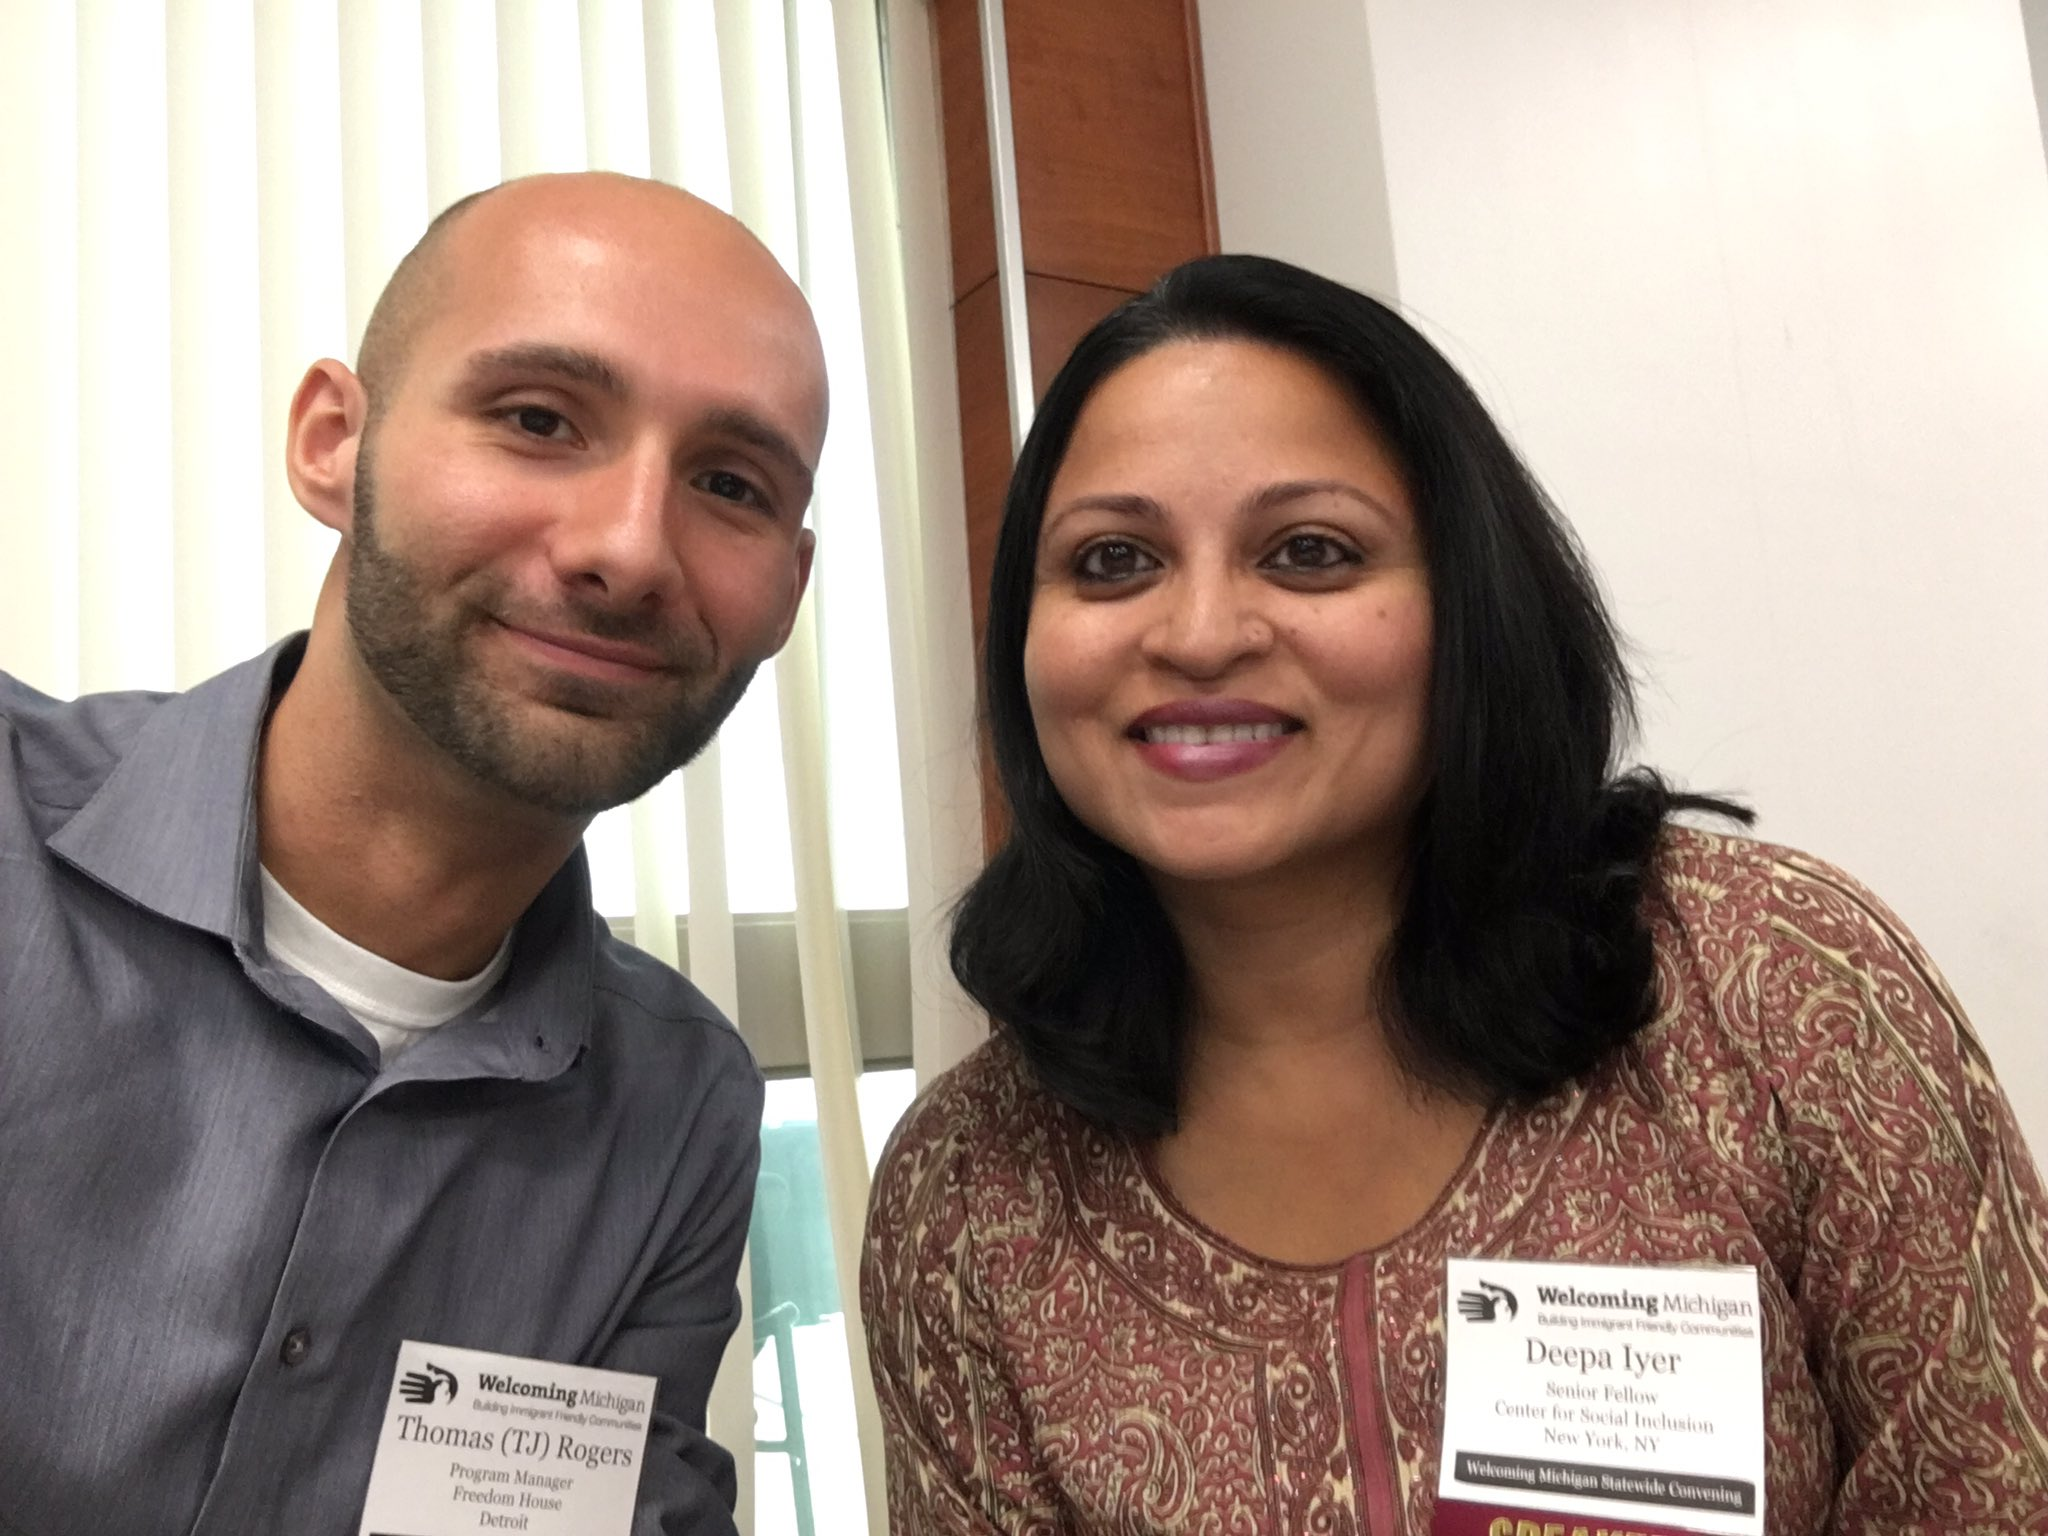 Keynote @dviyer & I at @Welcoming_MI Statewide Convening! #WelcomingMI #racialjustice RefugeesWelcome #WithRefugees https://t.co/T4s2xFh2It